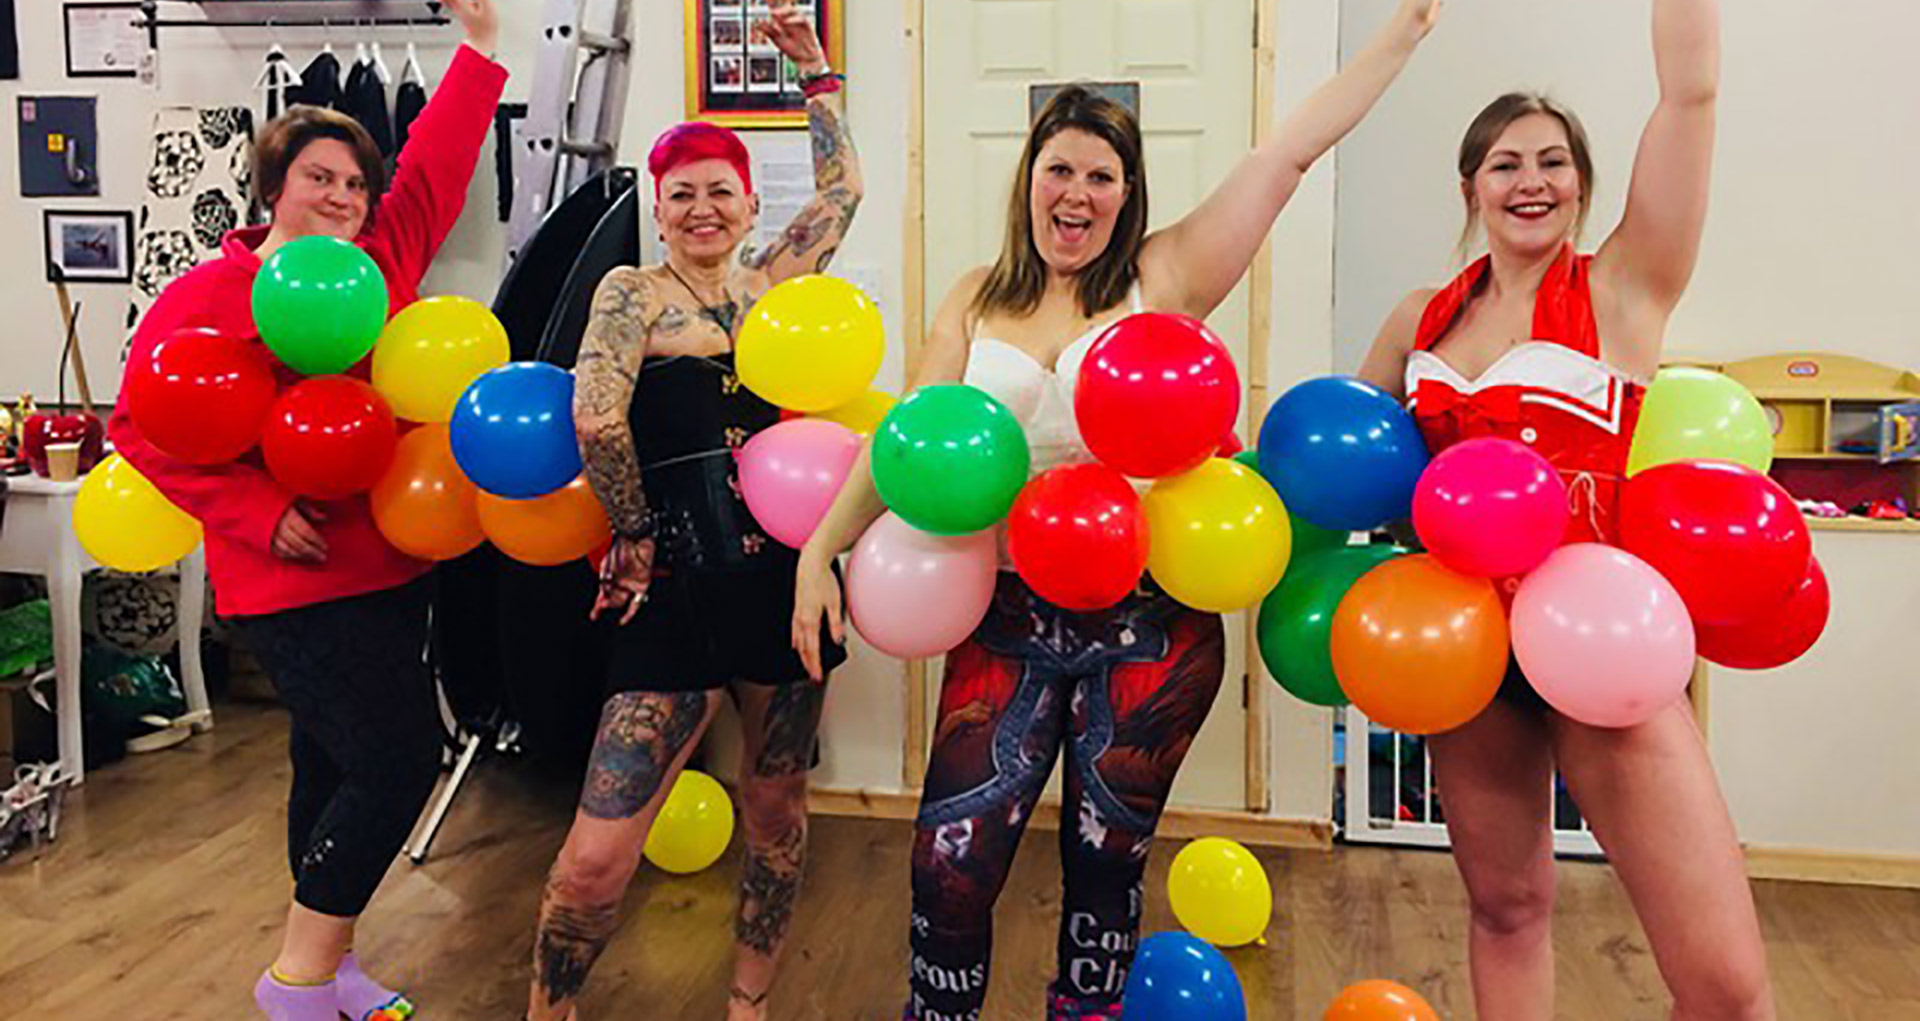 Ross-on-Wye dance studio, Mizz Twisted Cherry, and owner Natalie Morgan-Dew, nominated for a National Happiness Award 2018